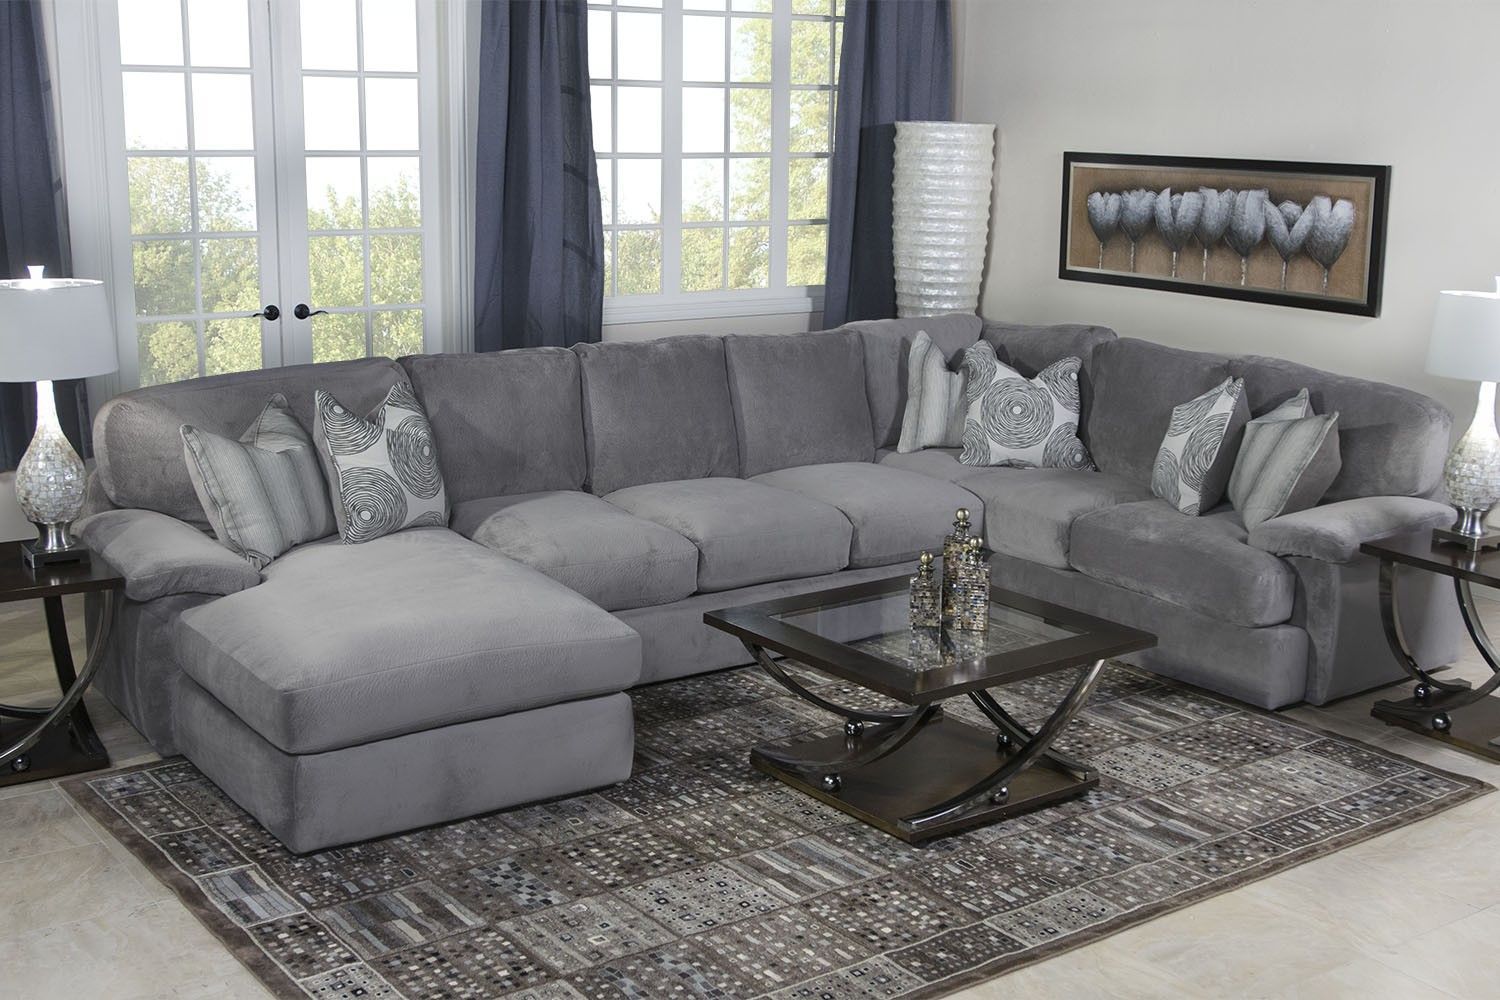 Key west sectional living room in gray living room mor for Furniture in room